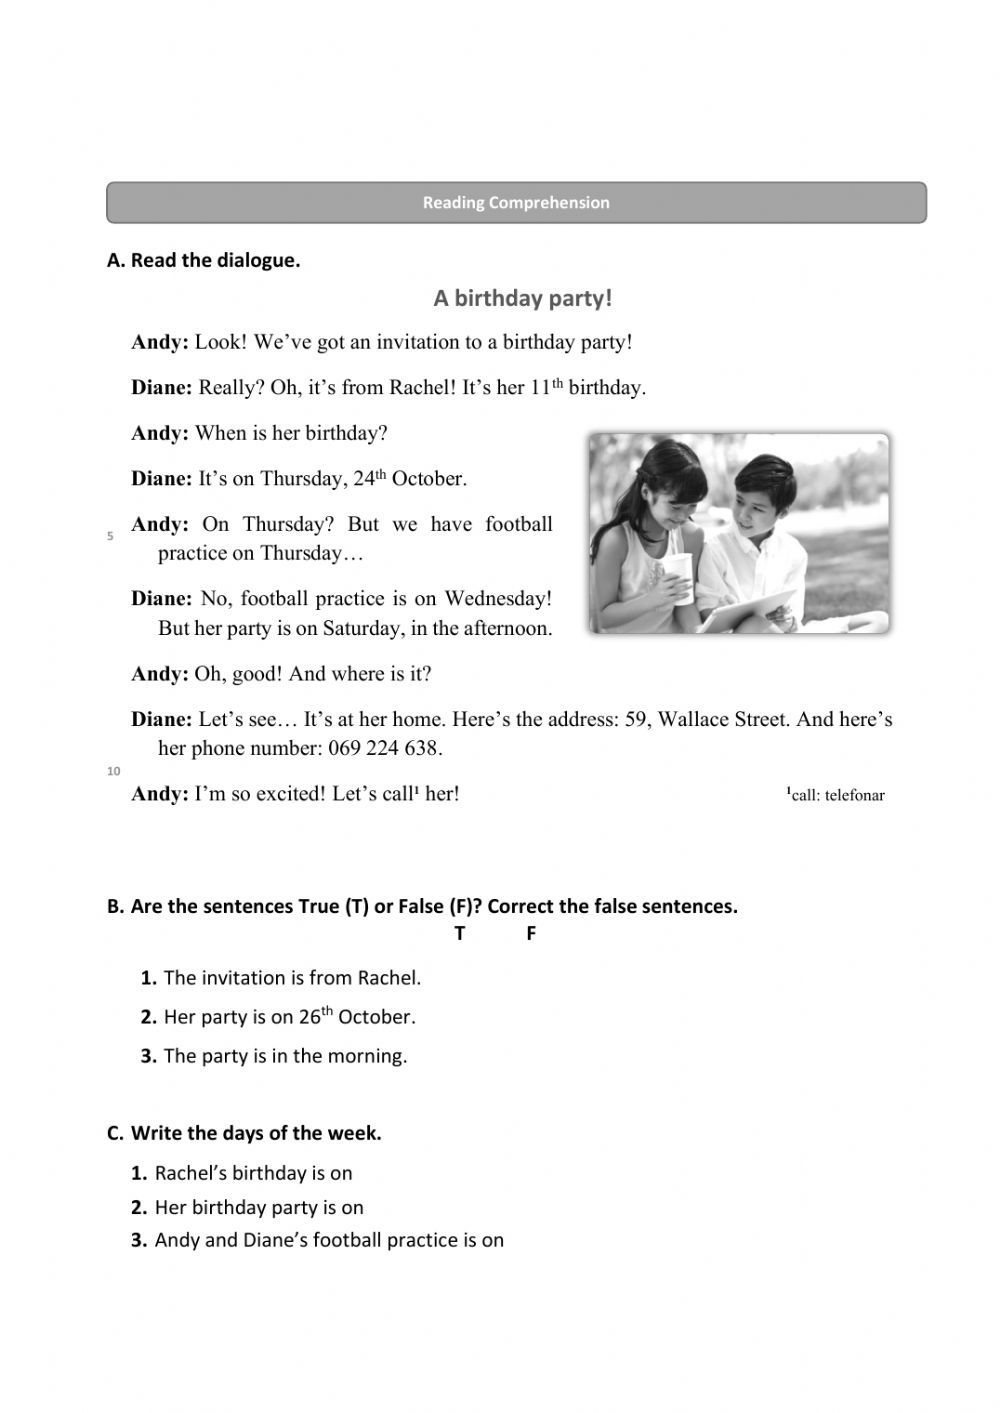 Reading Comprehension A Birthday Party Worksheet In 2021 Reading Comprehension Comprehension Close Reading Comprehension [ 1413 x 1000 Pixel ]